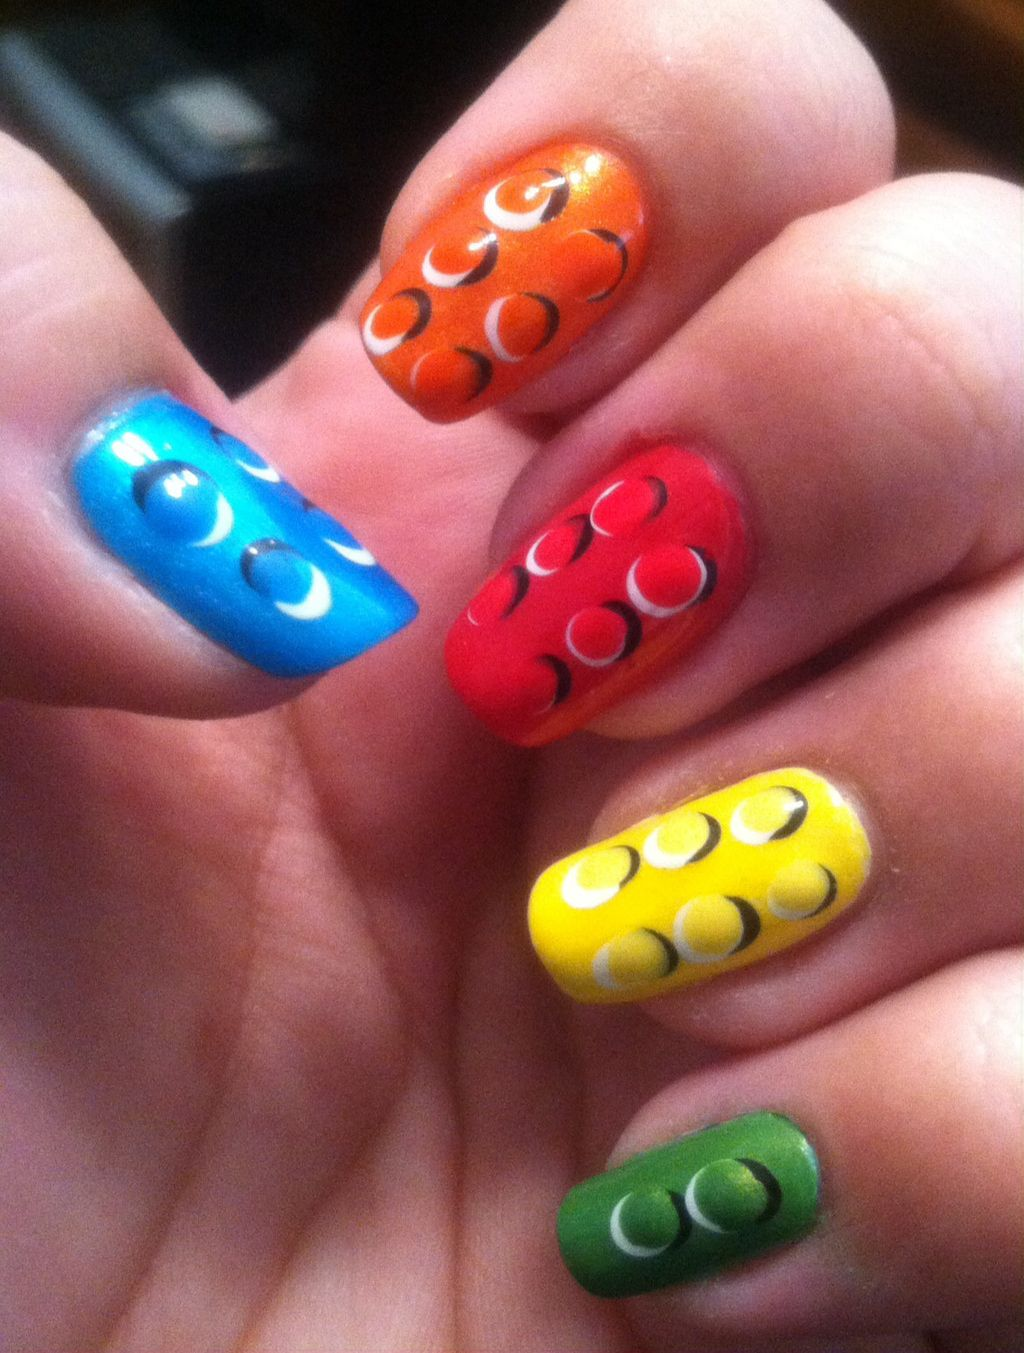 29 Examples Of Marvellously Geeky Nail Art | Nail care